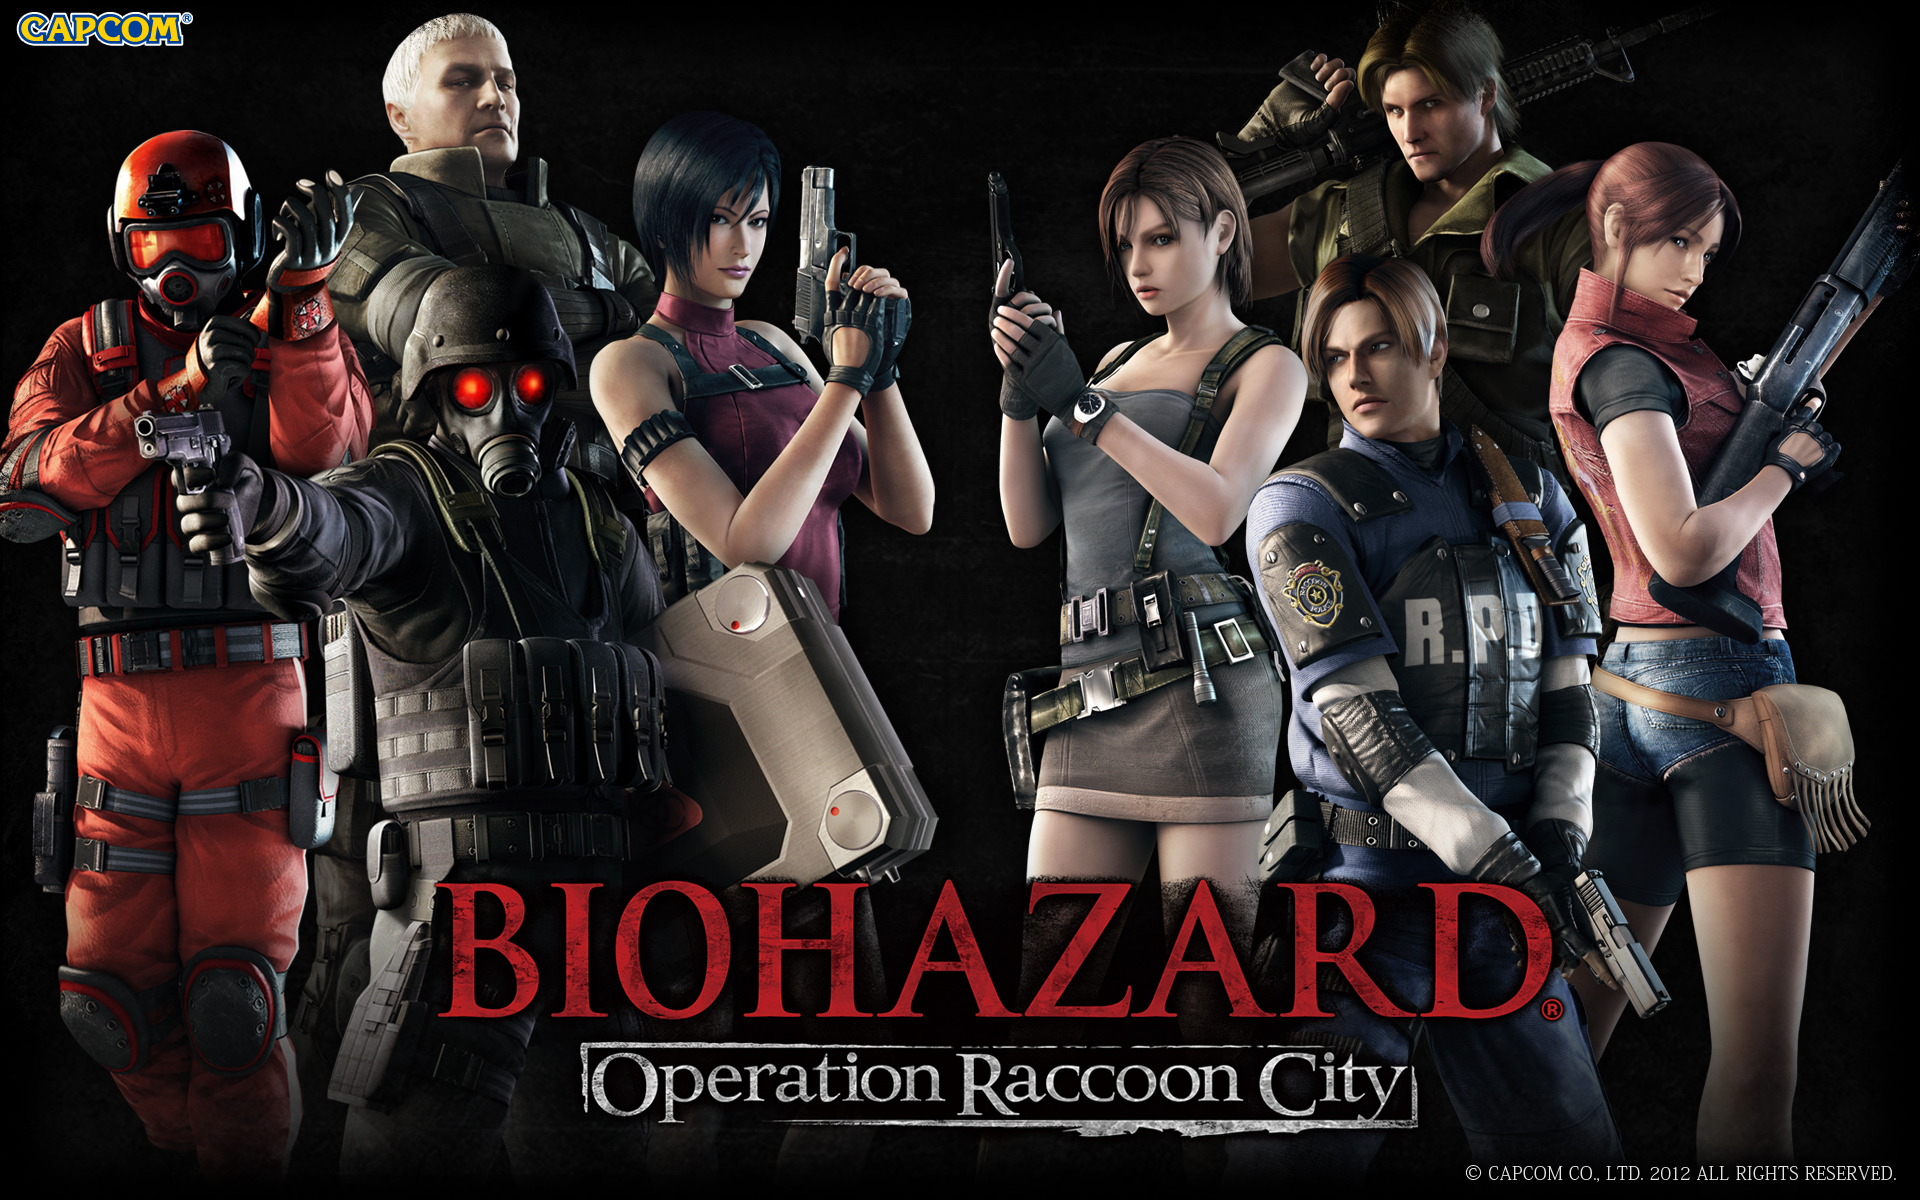 Resident Evil Operation Raccoon City 2012 Promotional Art